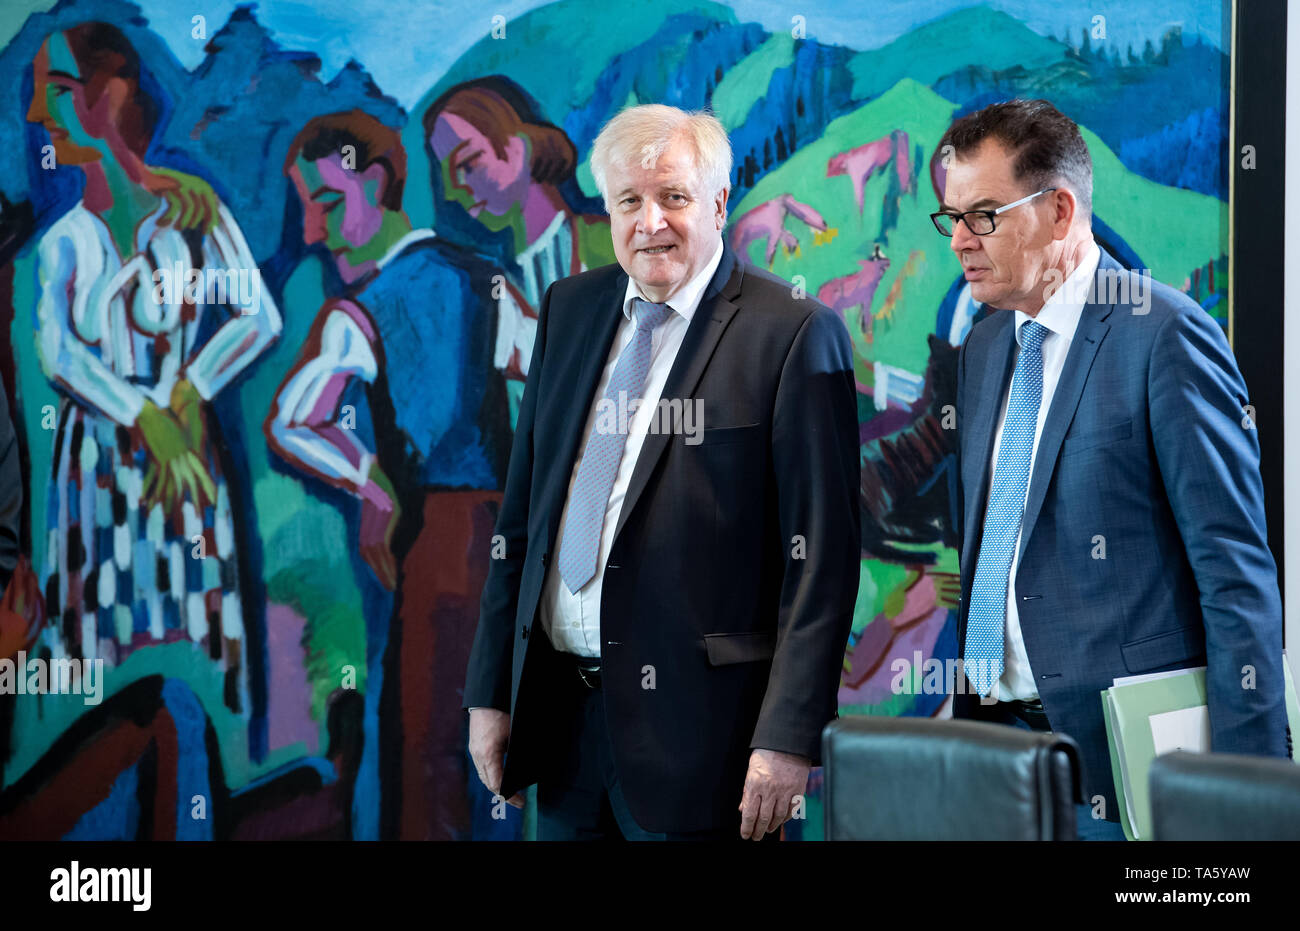 Berlin, Germany. 22nd May, 2019. Horst Seehofer (l, CSU), Federal Minister of the Interior, Home and Construction, and Gerd Müller (CSU), Development Minister, attend the cabinet meeting at the Federal Chancellery. At today's meeting, the members of the Federal Government will discuss, among other things, the billions in aid for structural change in the coal-mining regions and a draft law on tax incentives for research and development. Credit: Bernd von Jutrczenka/dpa/Alamy Live News - Stock Image